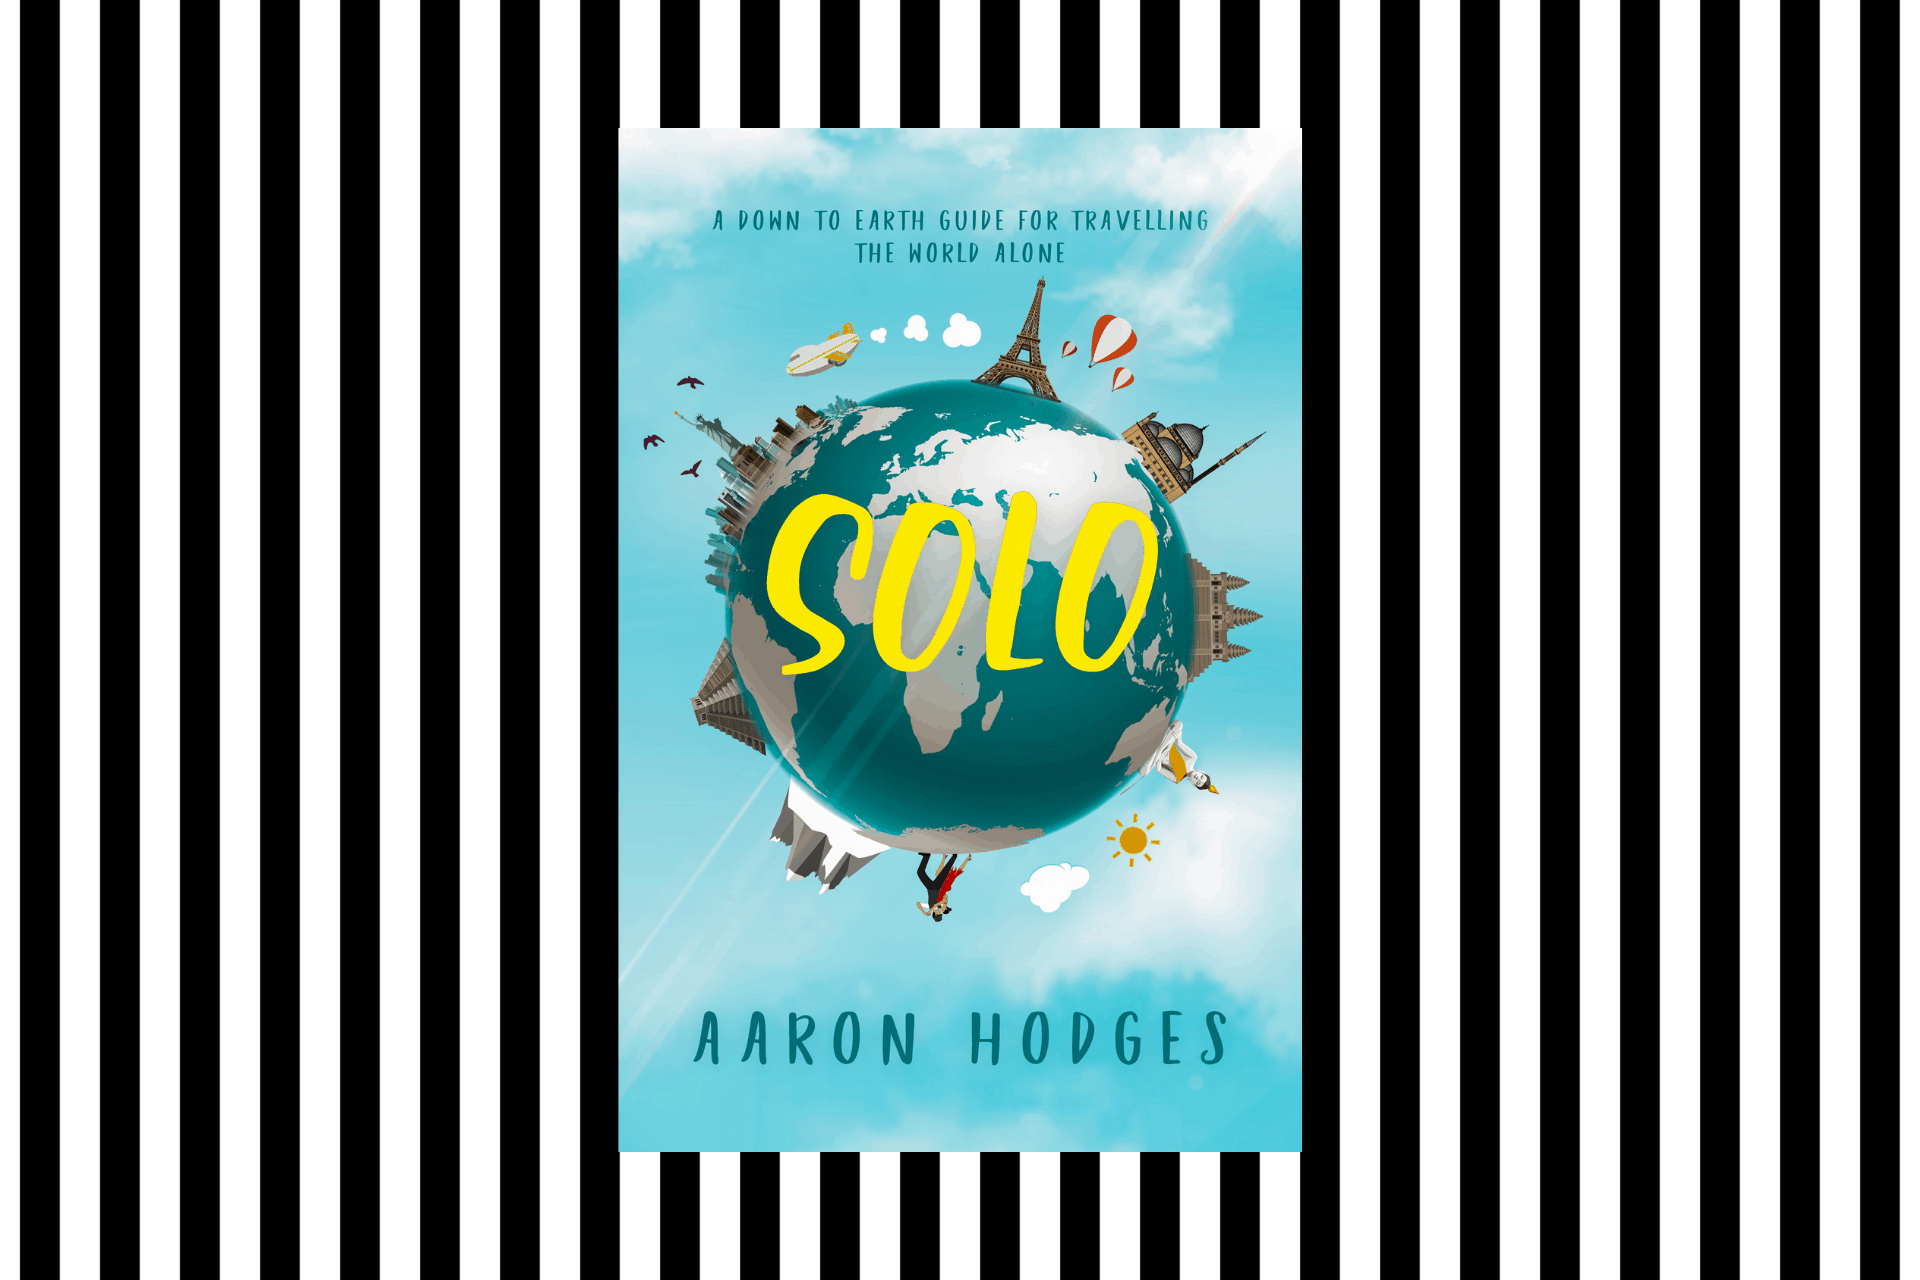 The cover of Solo by Aaron Hodges